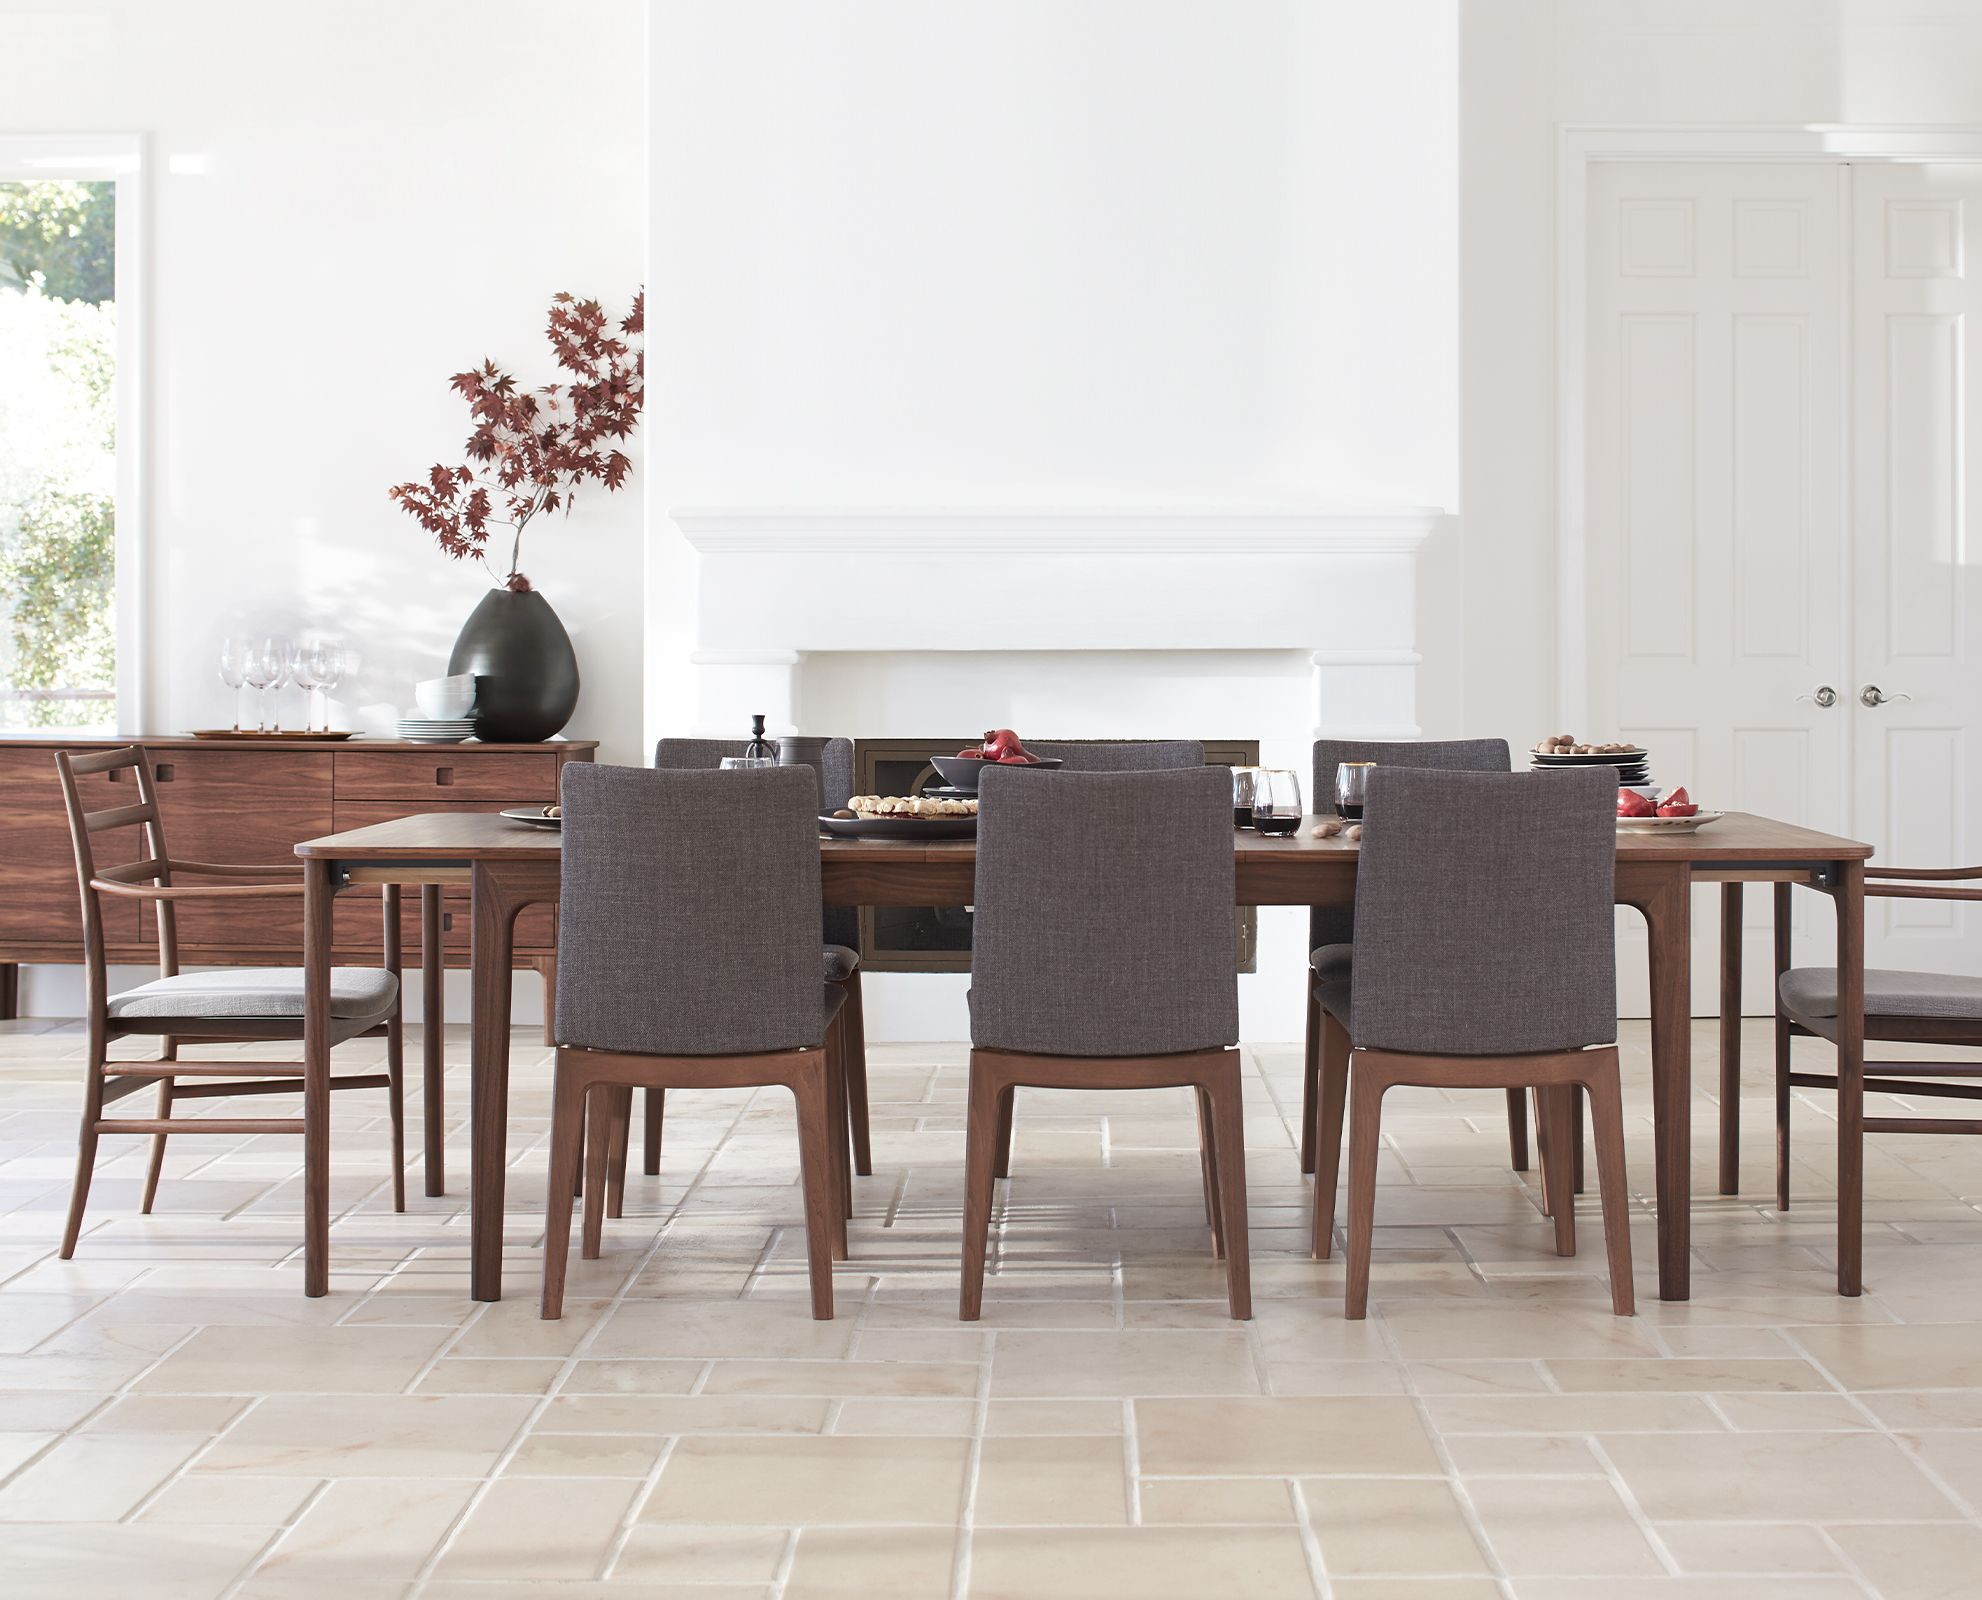 Sundby Dining Chair By Scandinavian Design I Like The Chairs And Floor